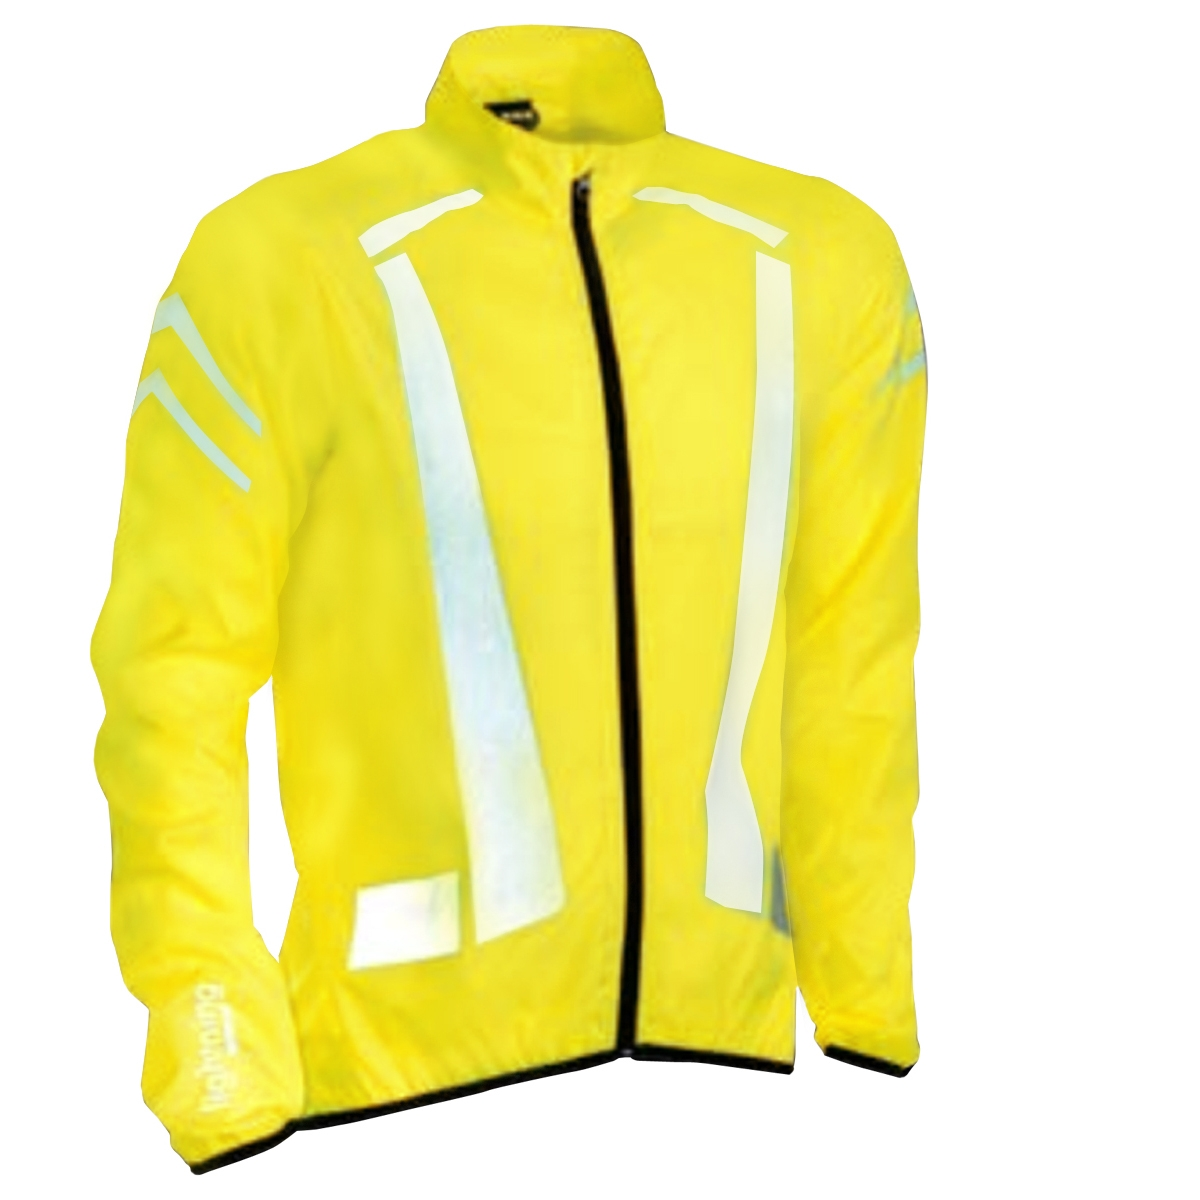 Veste vélo Wowow fluo lightning Taille S